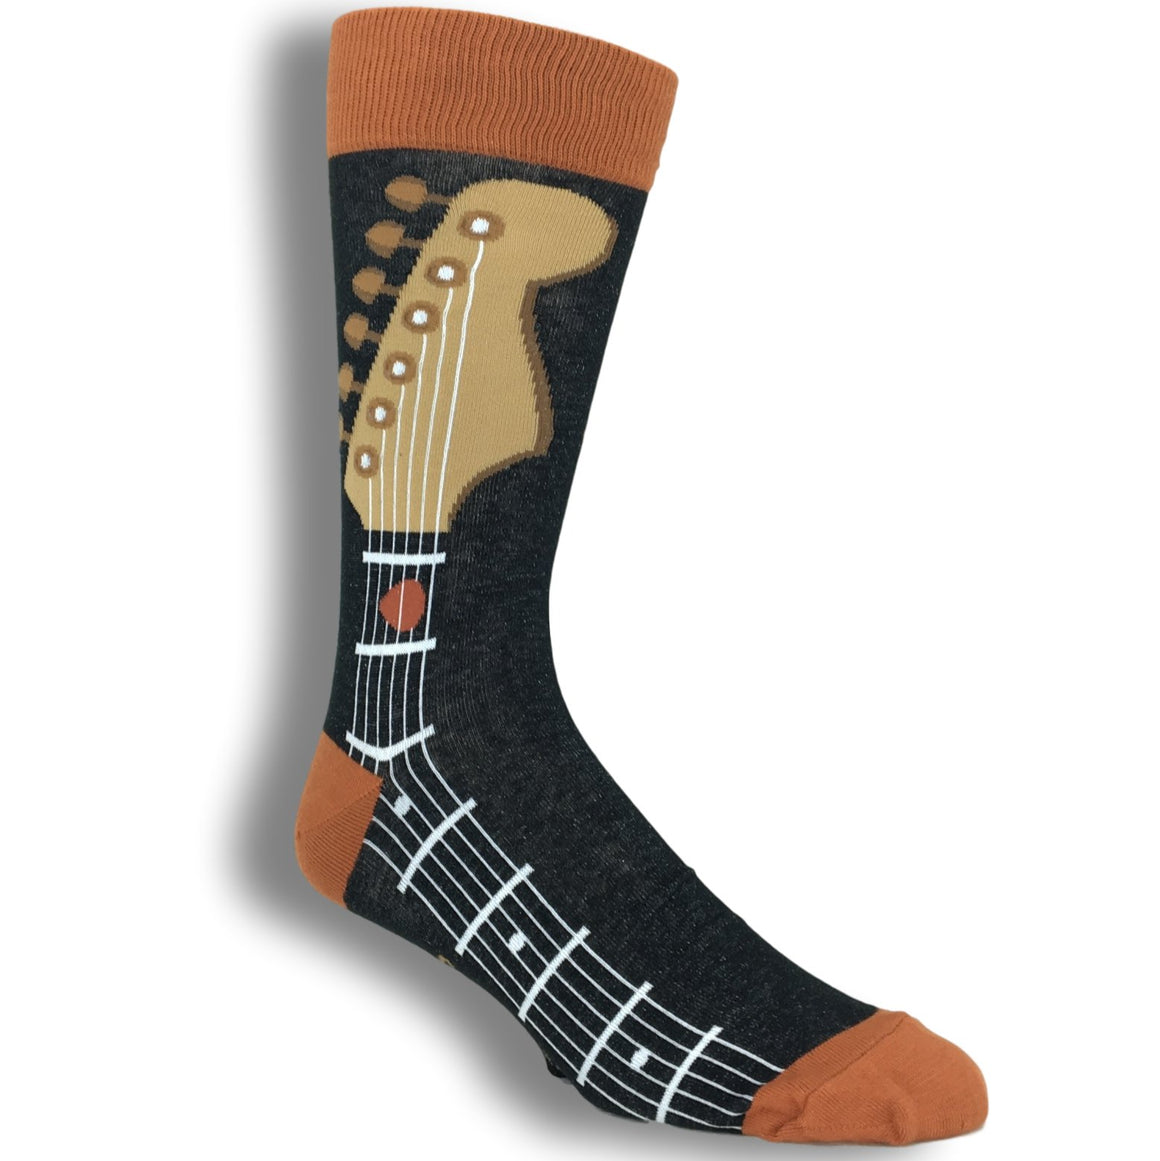 Guitar Socks by Foot Traffic - The Sock Spot